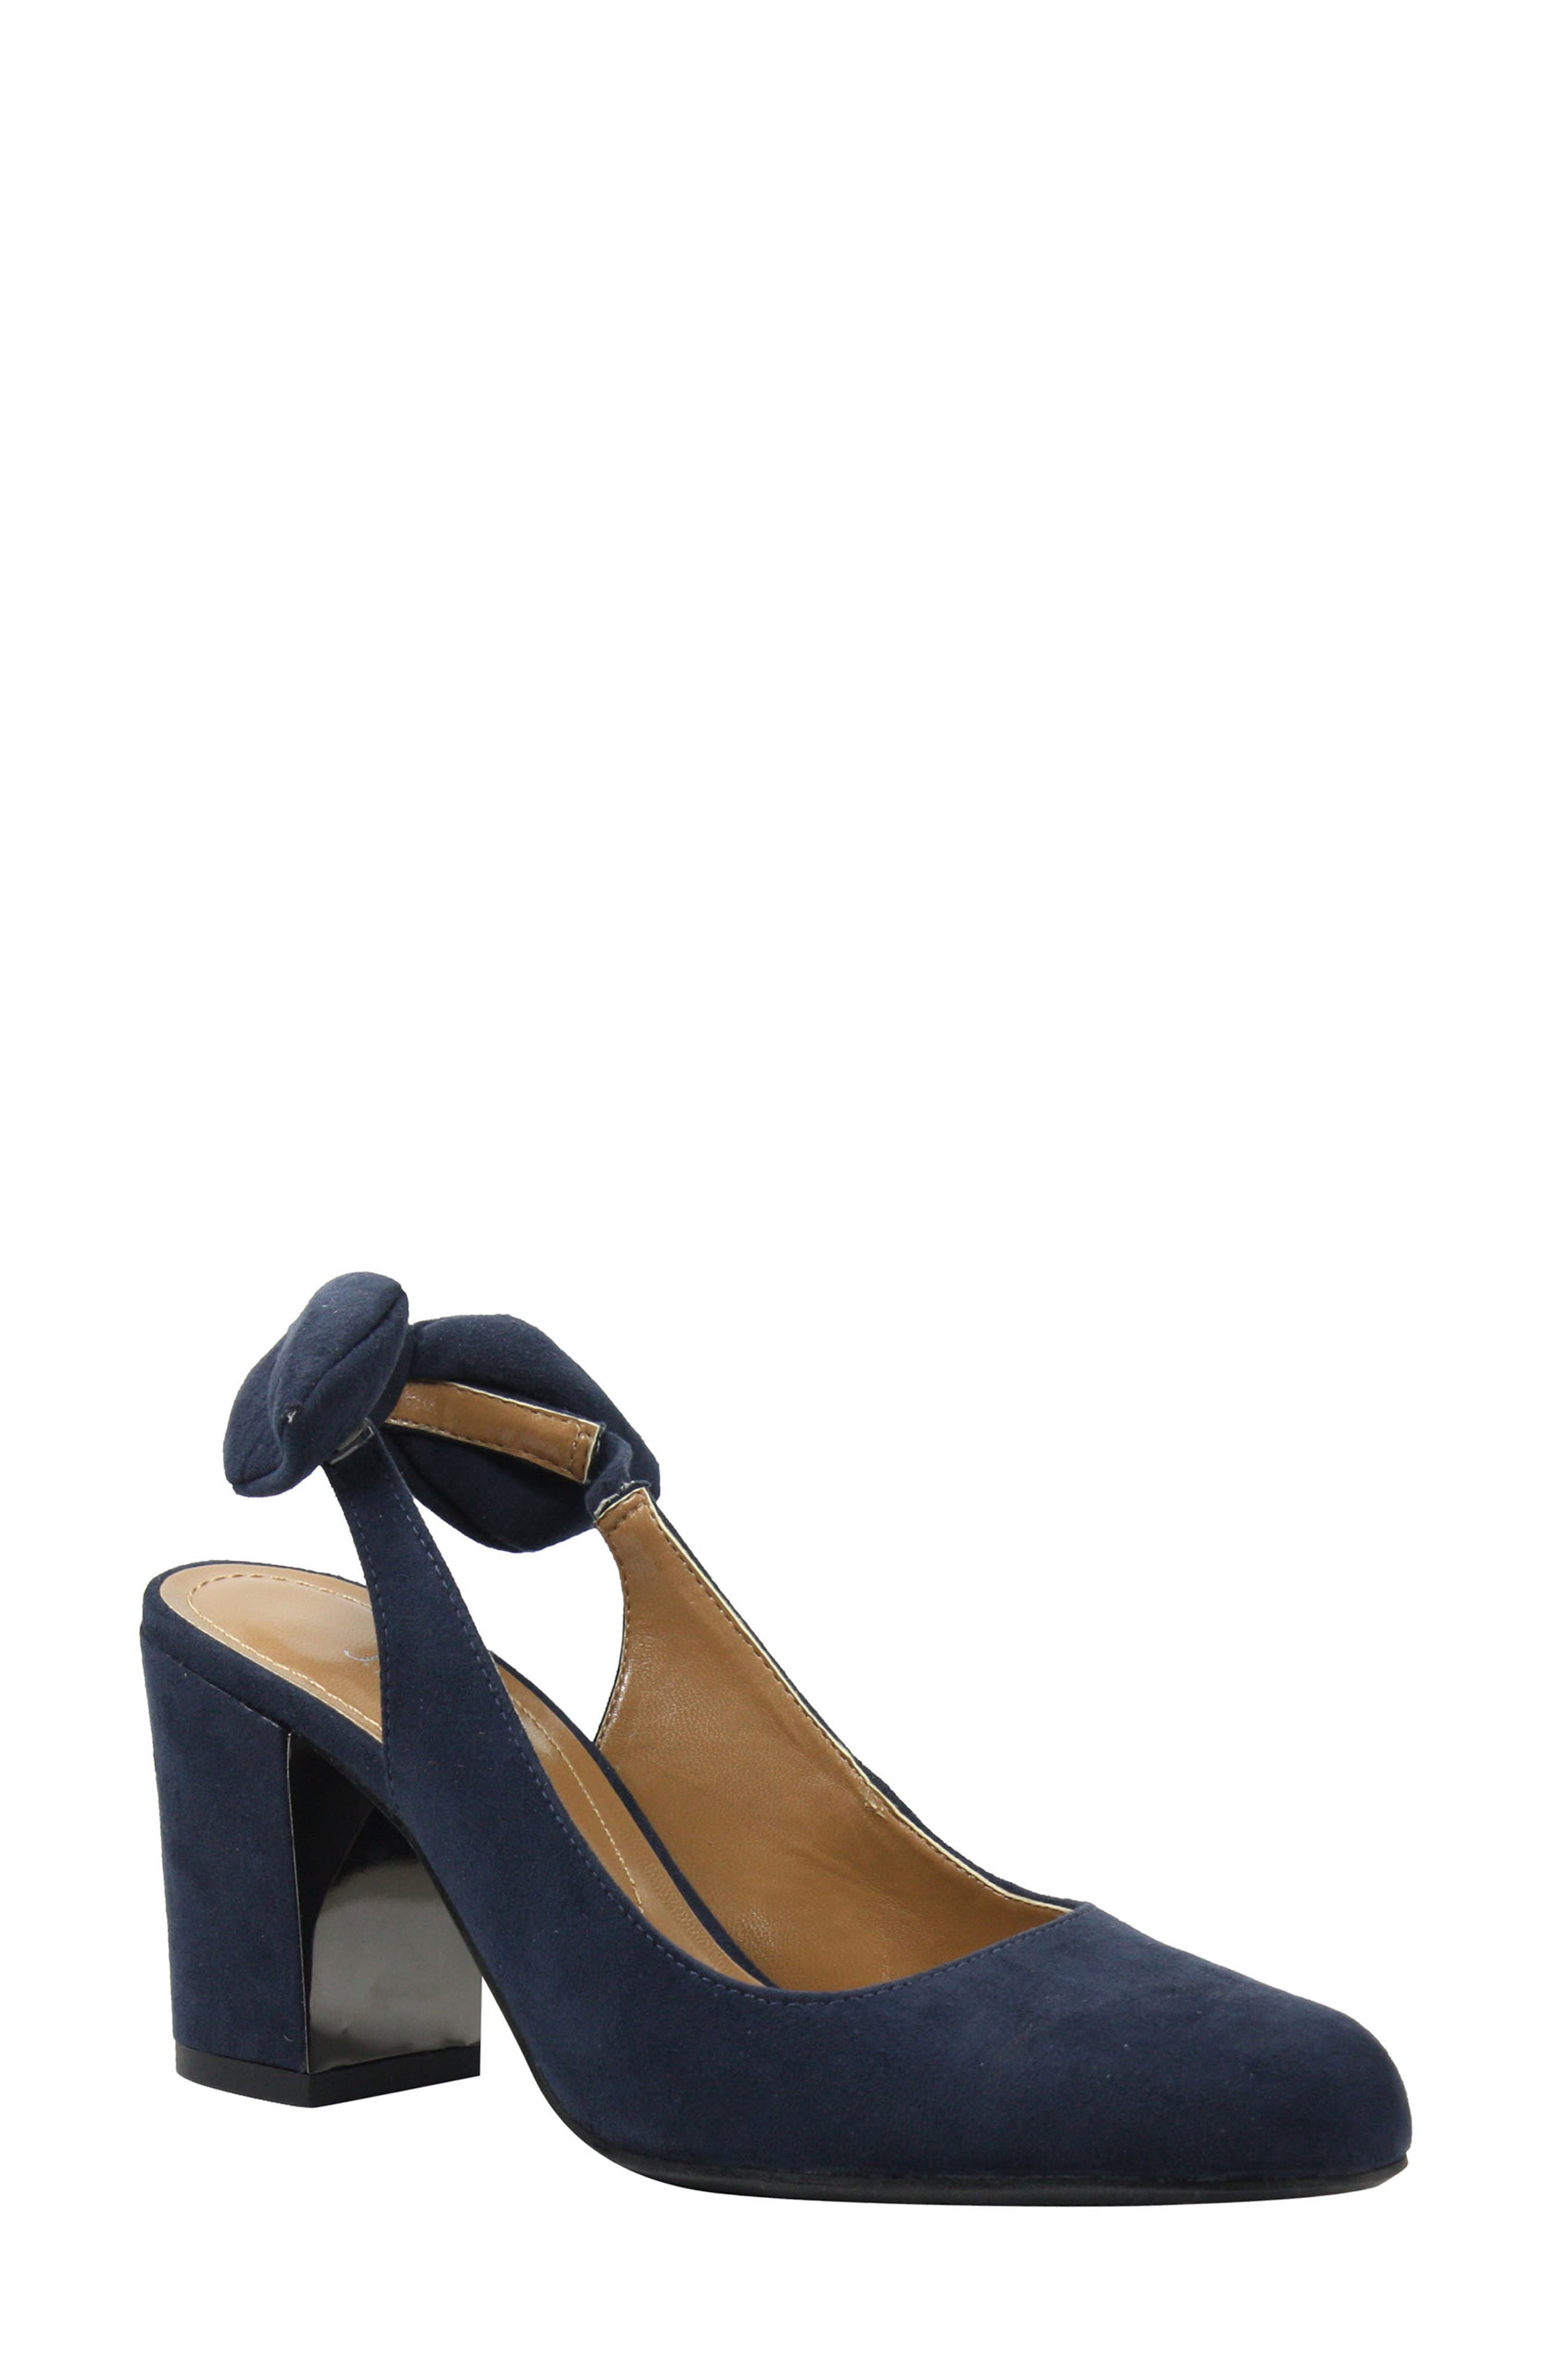 Kennedi Slingback Pump,                         Main,                         color, Navy